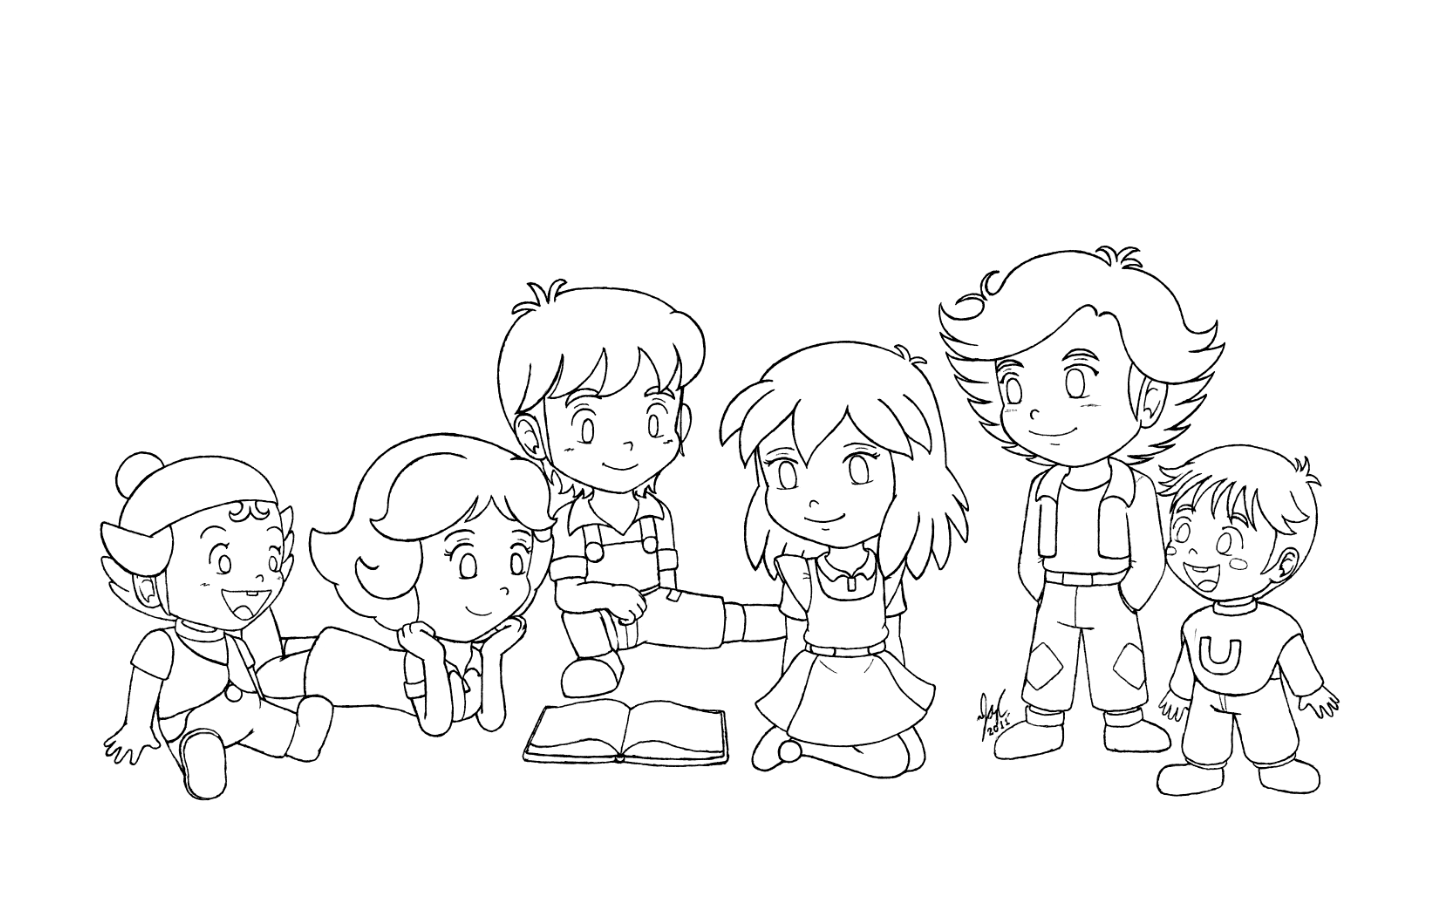 Line Drawing For Kids : Tatsunoko bible kids line art by jazzy c oaks on deviantart